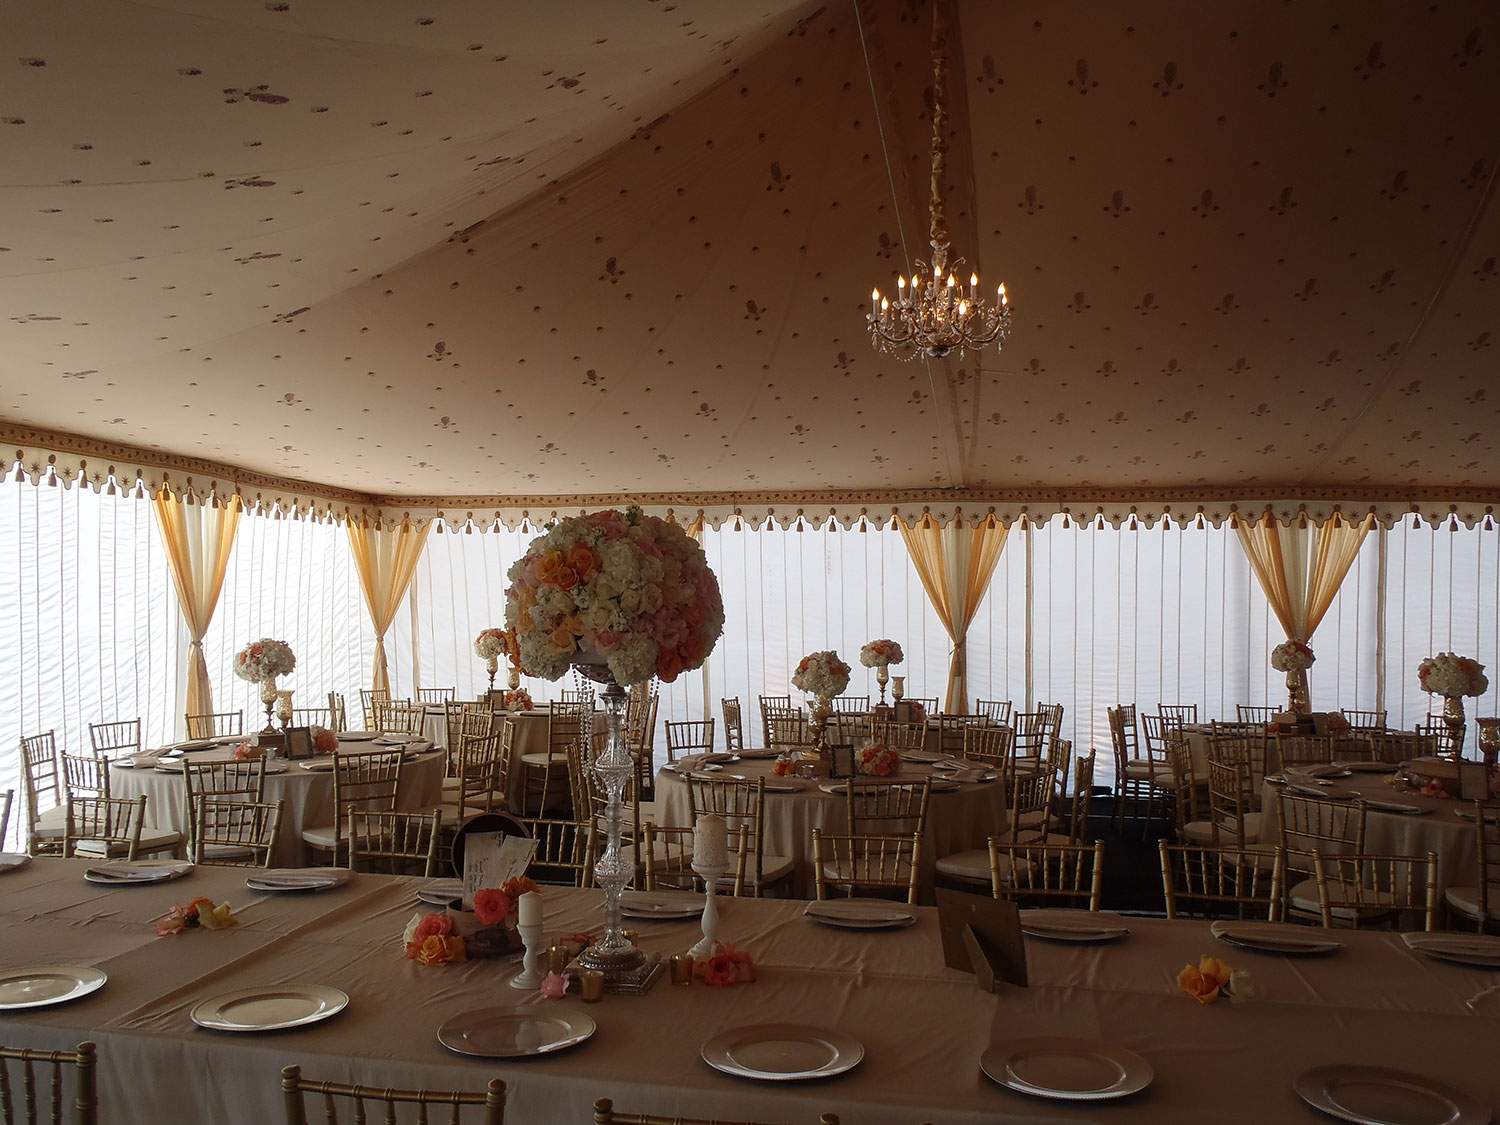 raj-tents-frame-tent-linings-cream-table-setting.jpg